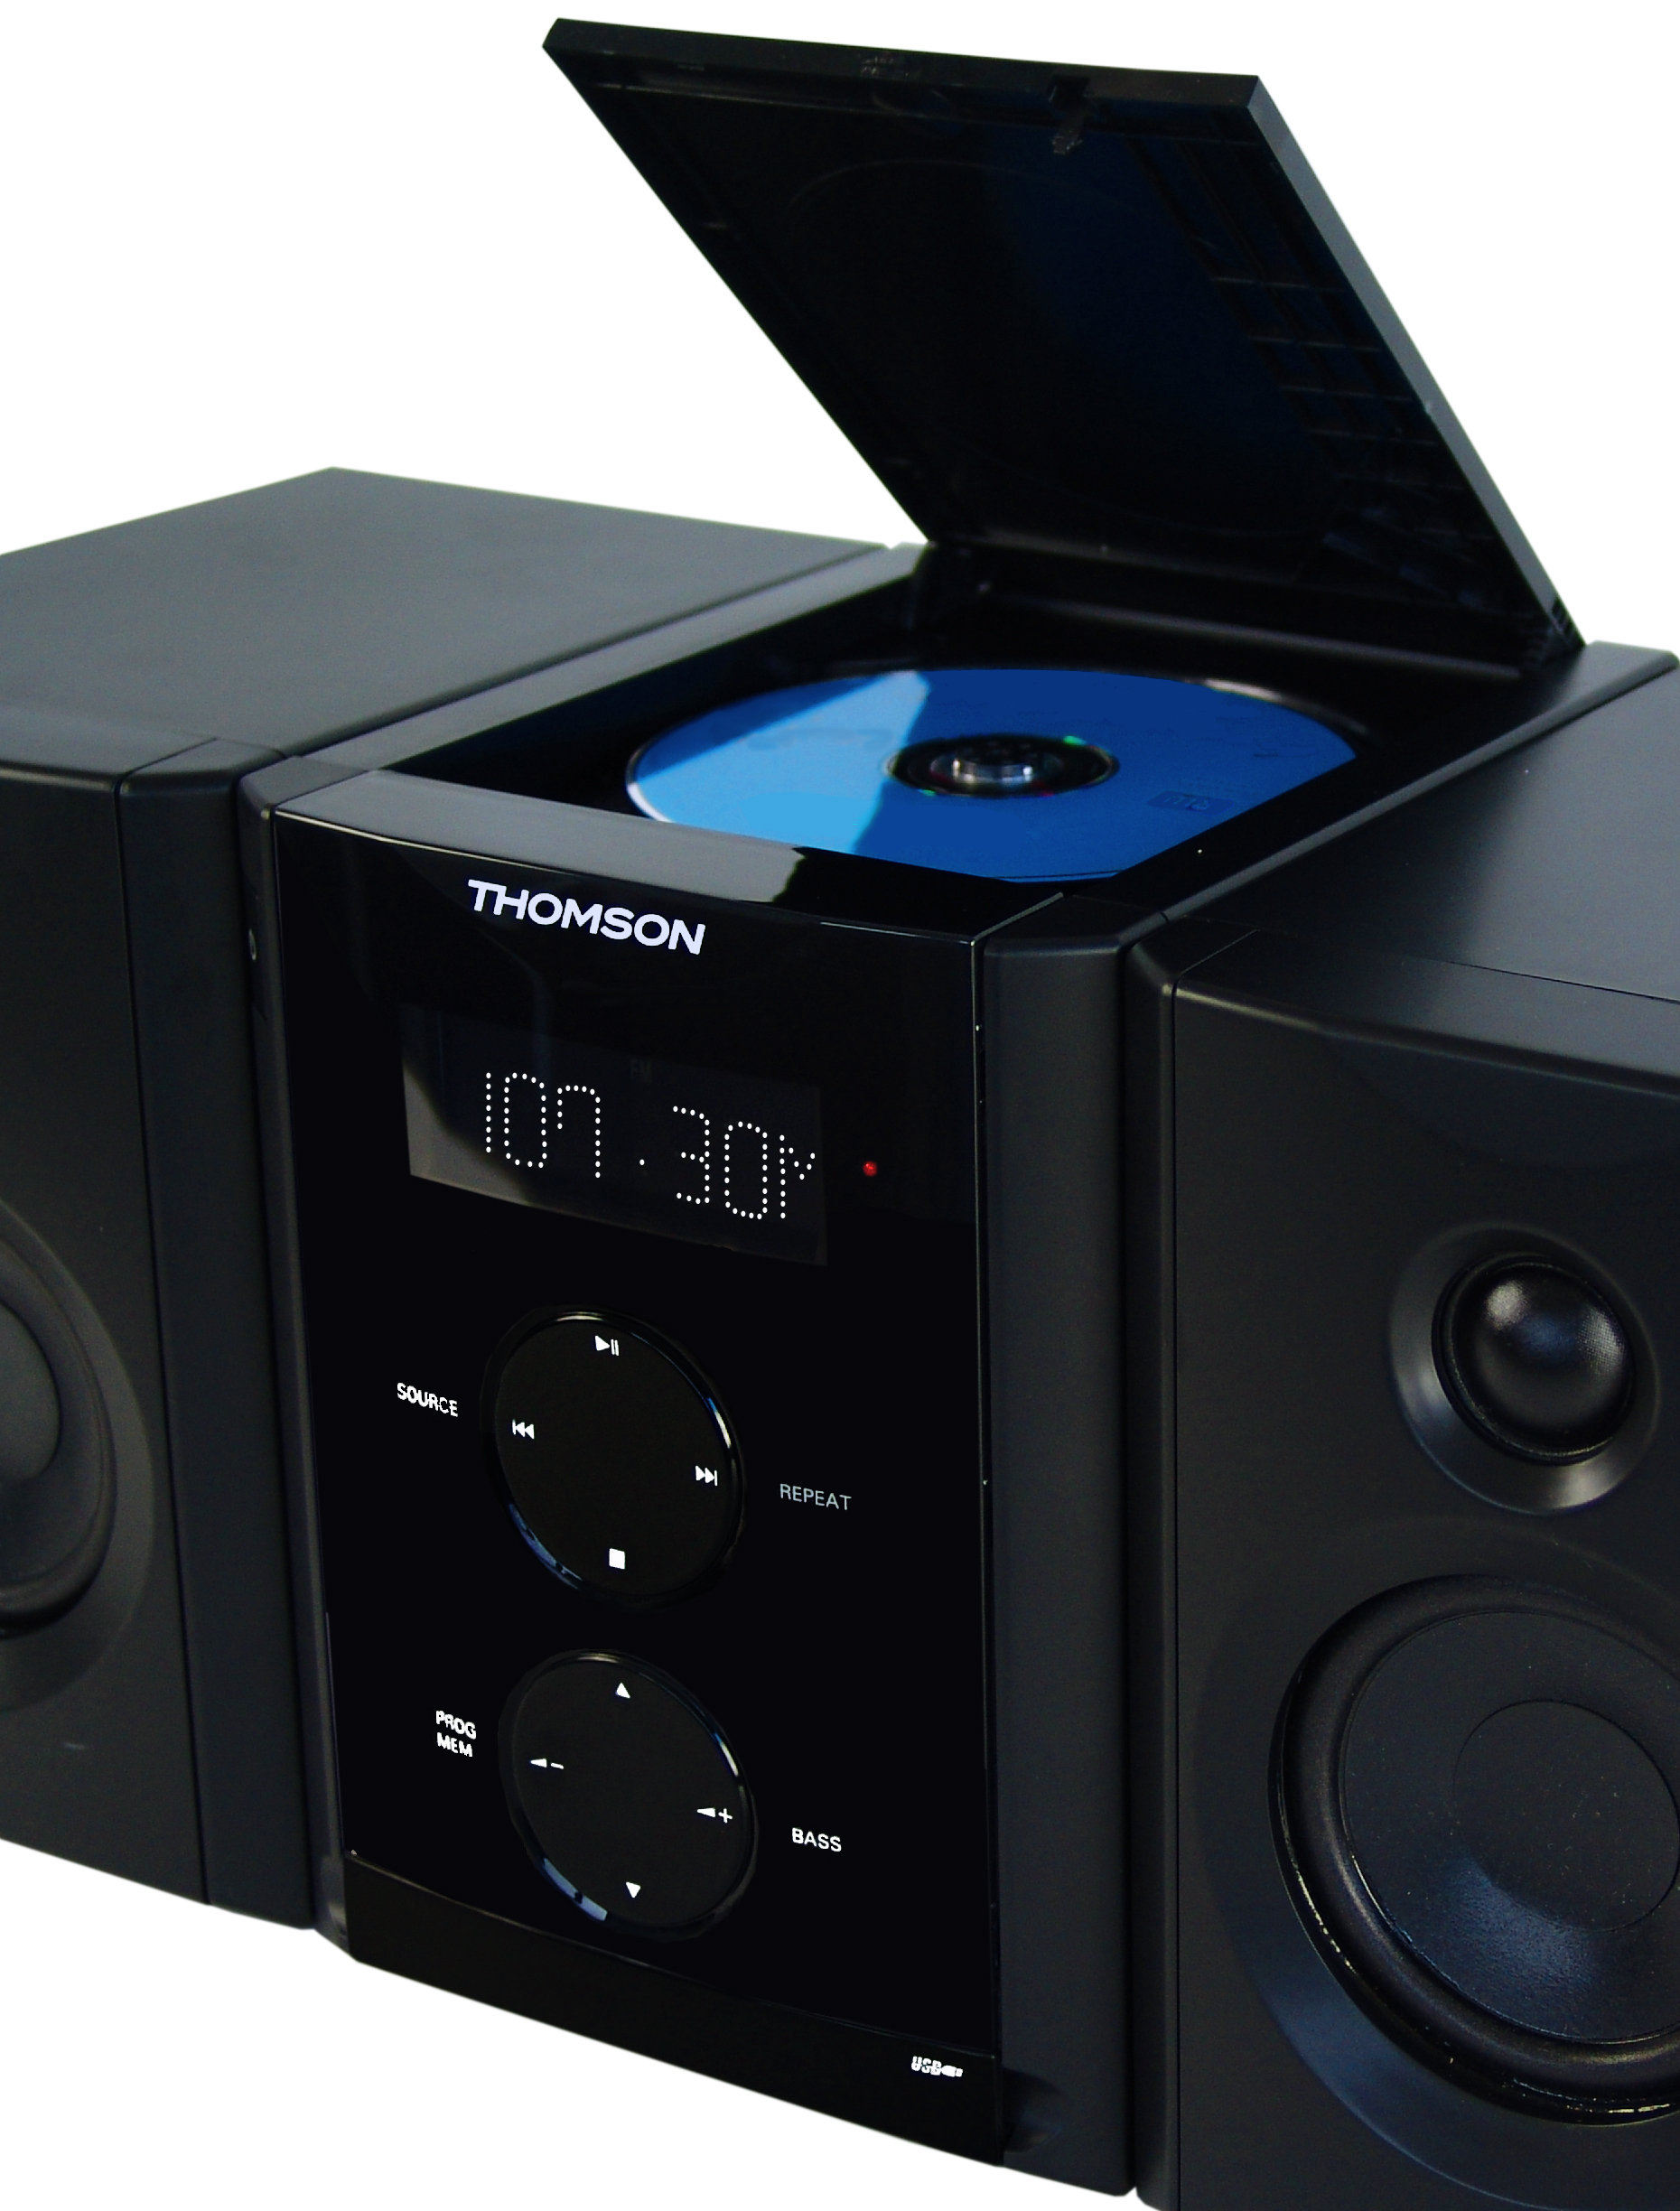 thomson mic 200 stereoanlage mit radio uhr mp3 cd player. Black Bedroom Furniture Sets. Home Design Ideas